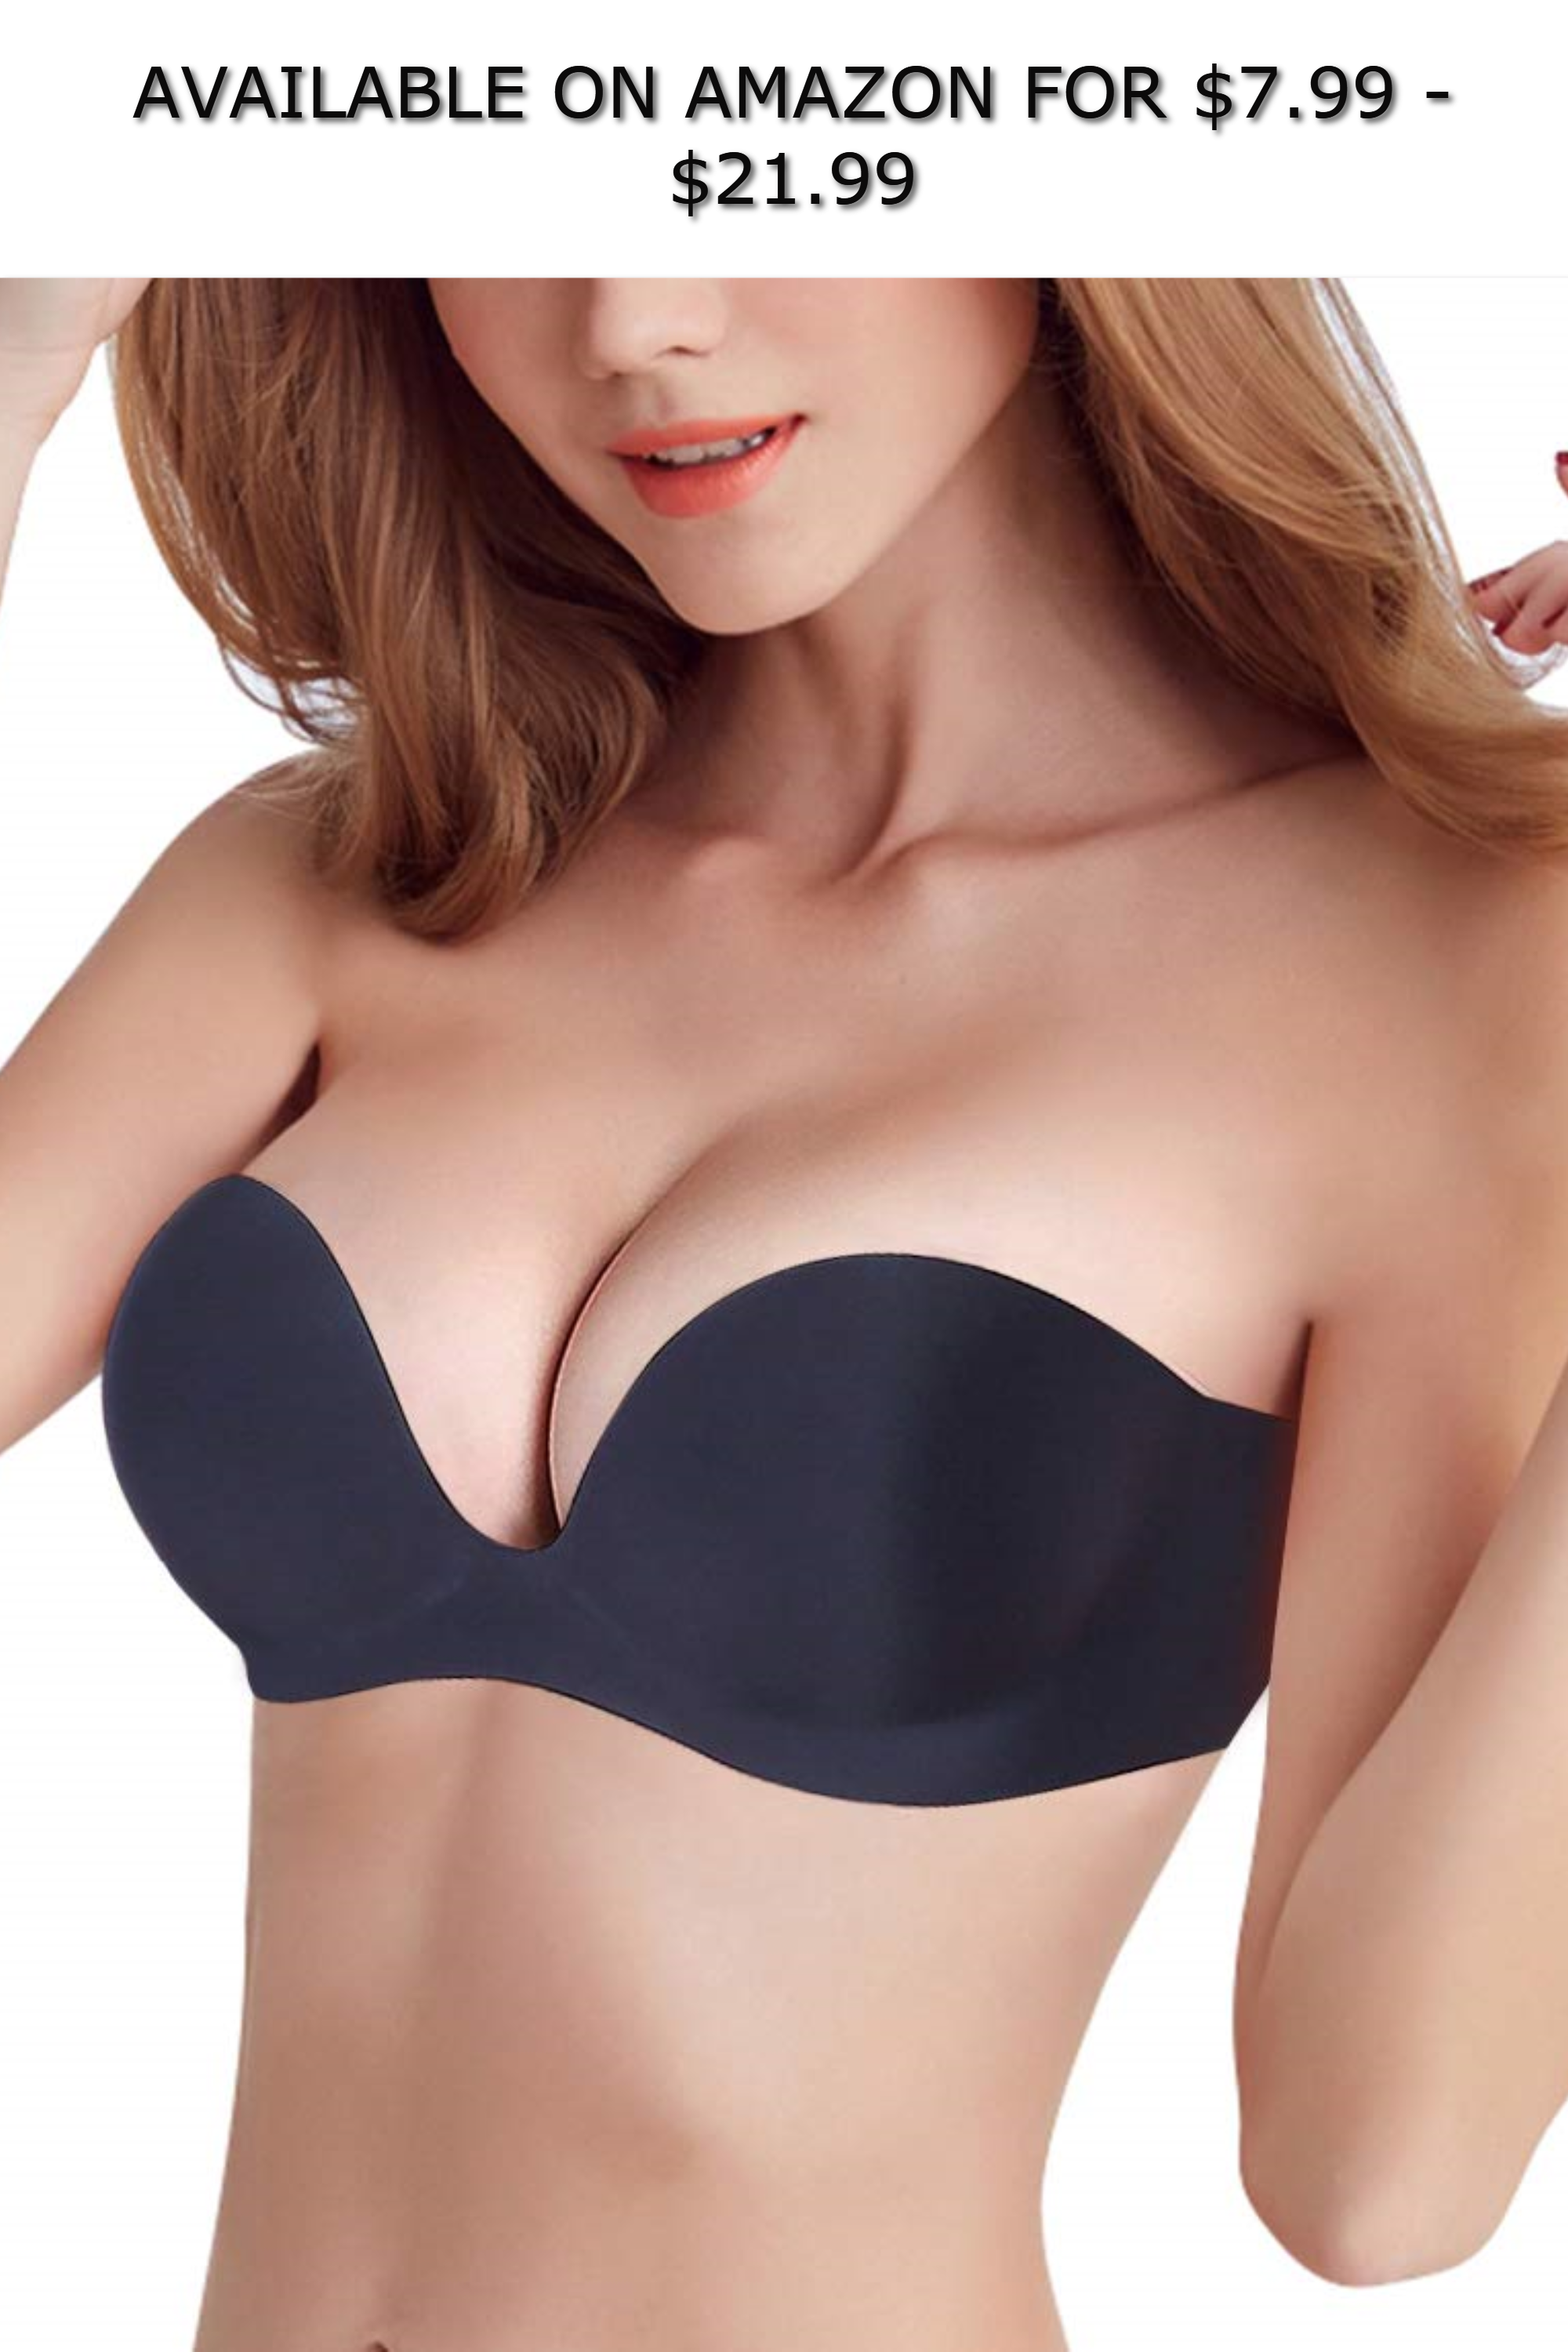 9d1c60180f703 Strapless Backless Sticky Bra for Women Plunge U Shape Bras Push up Self  Adhesive Bras ◇